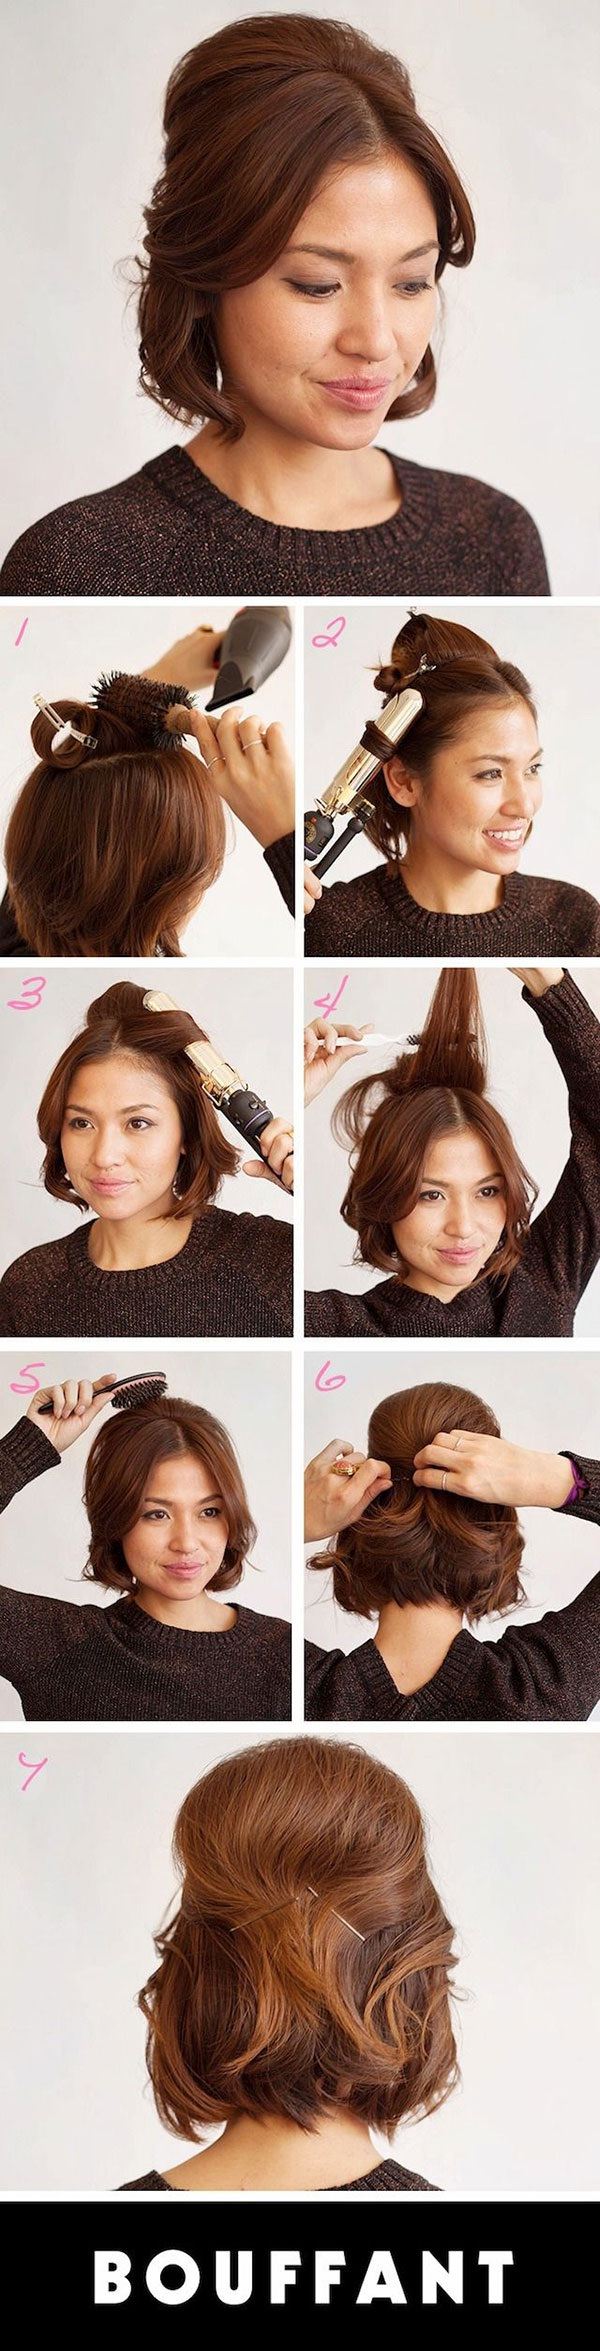 30 5 Minute Hairstyles For Your Short Hair New Hairstyle Trends